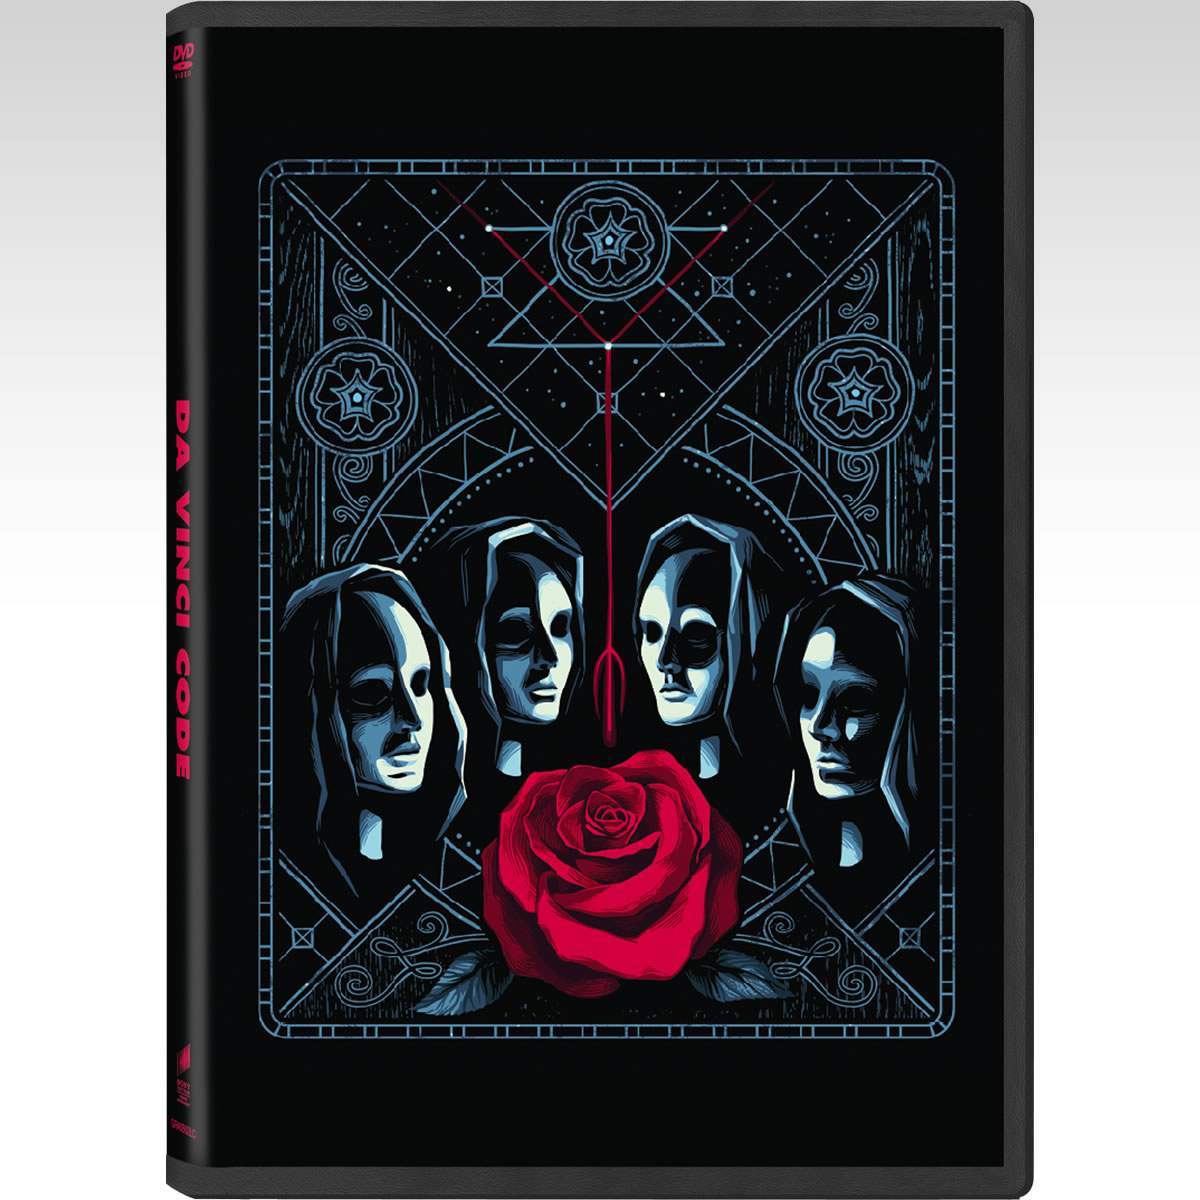 THE DA VINCI CODE - ΚΩΔΙΚΑΣ ΝΤΑ ΒΙΝΤΣΙ Pop Art Edition (2 DVD)